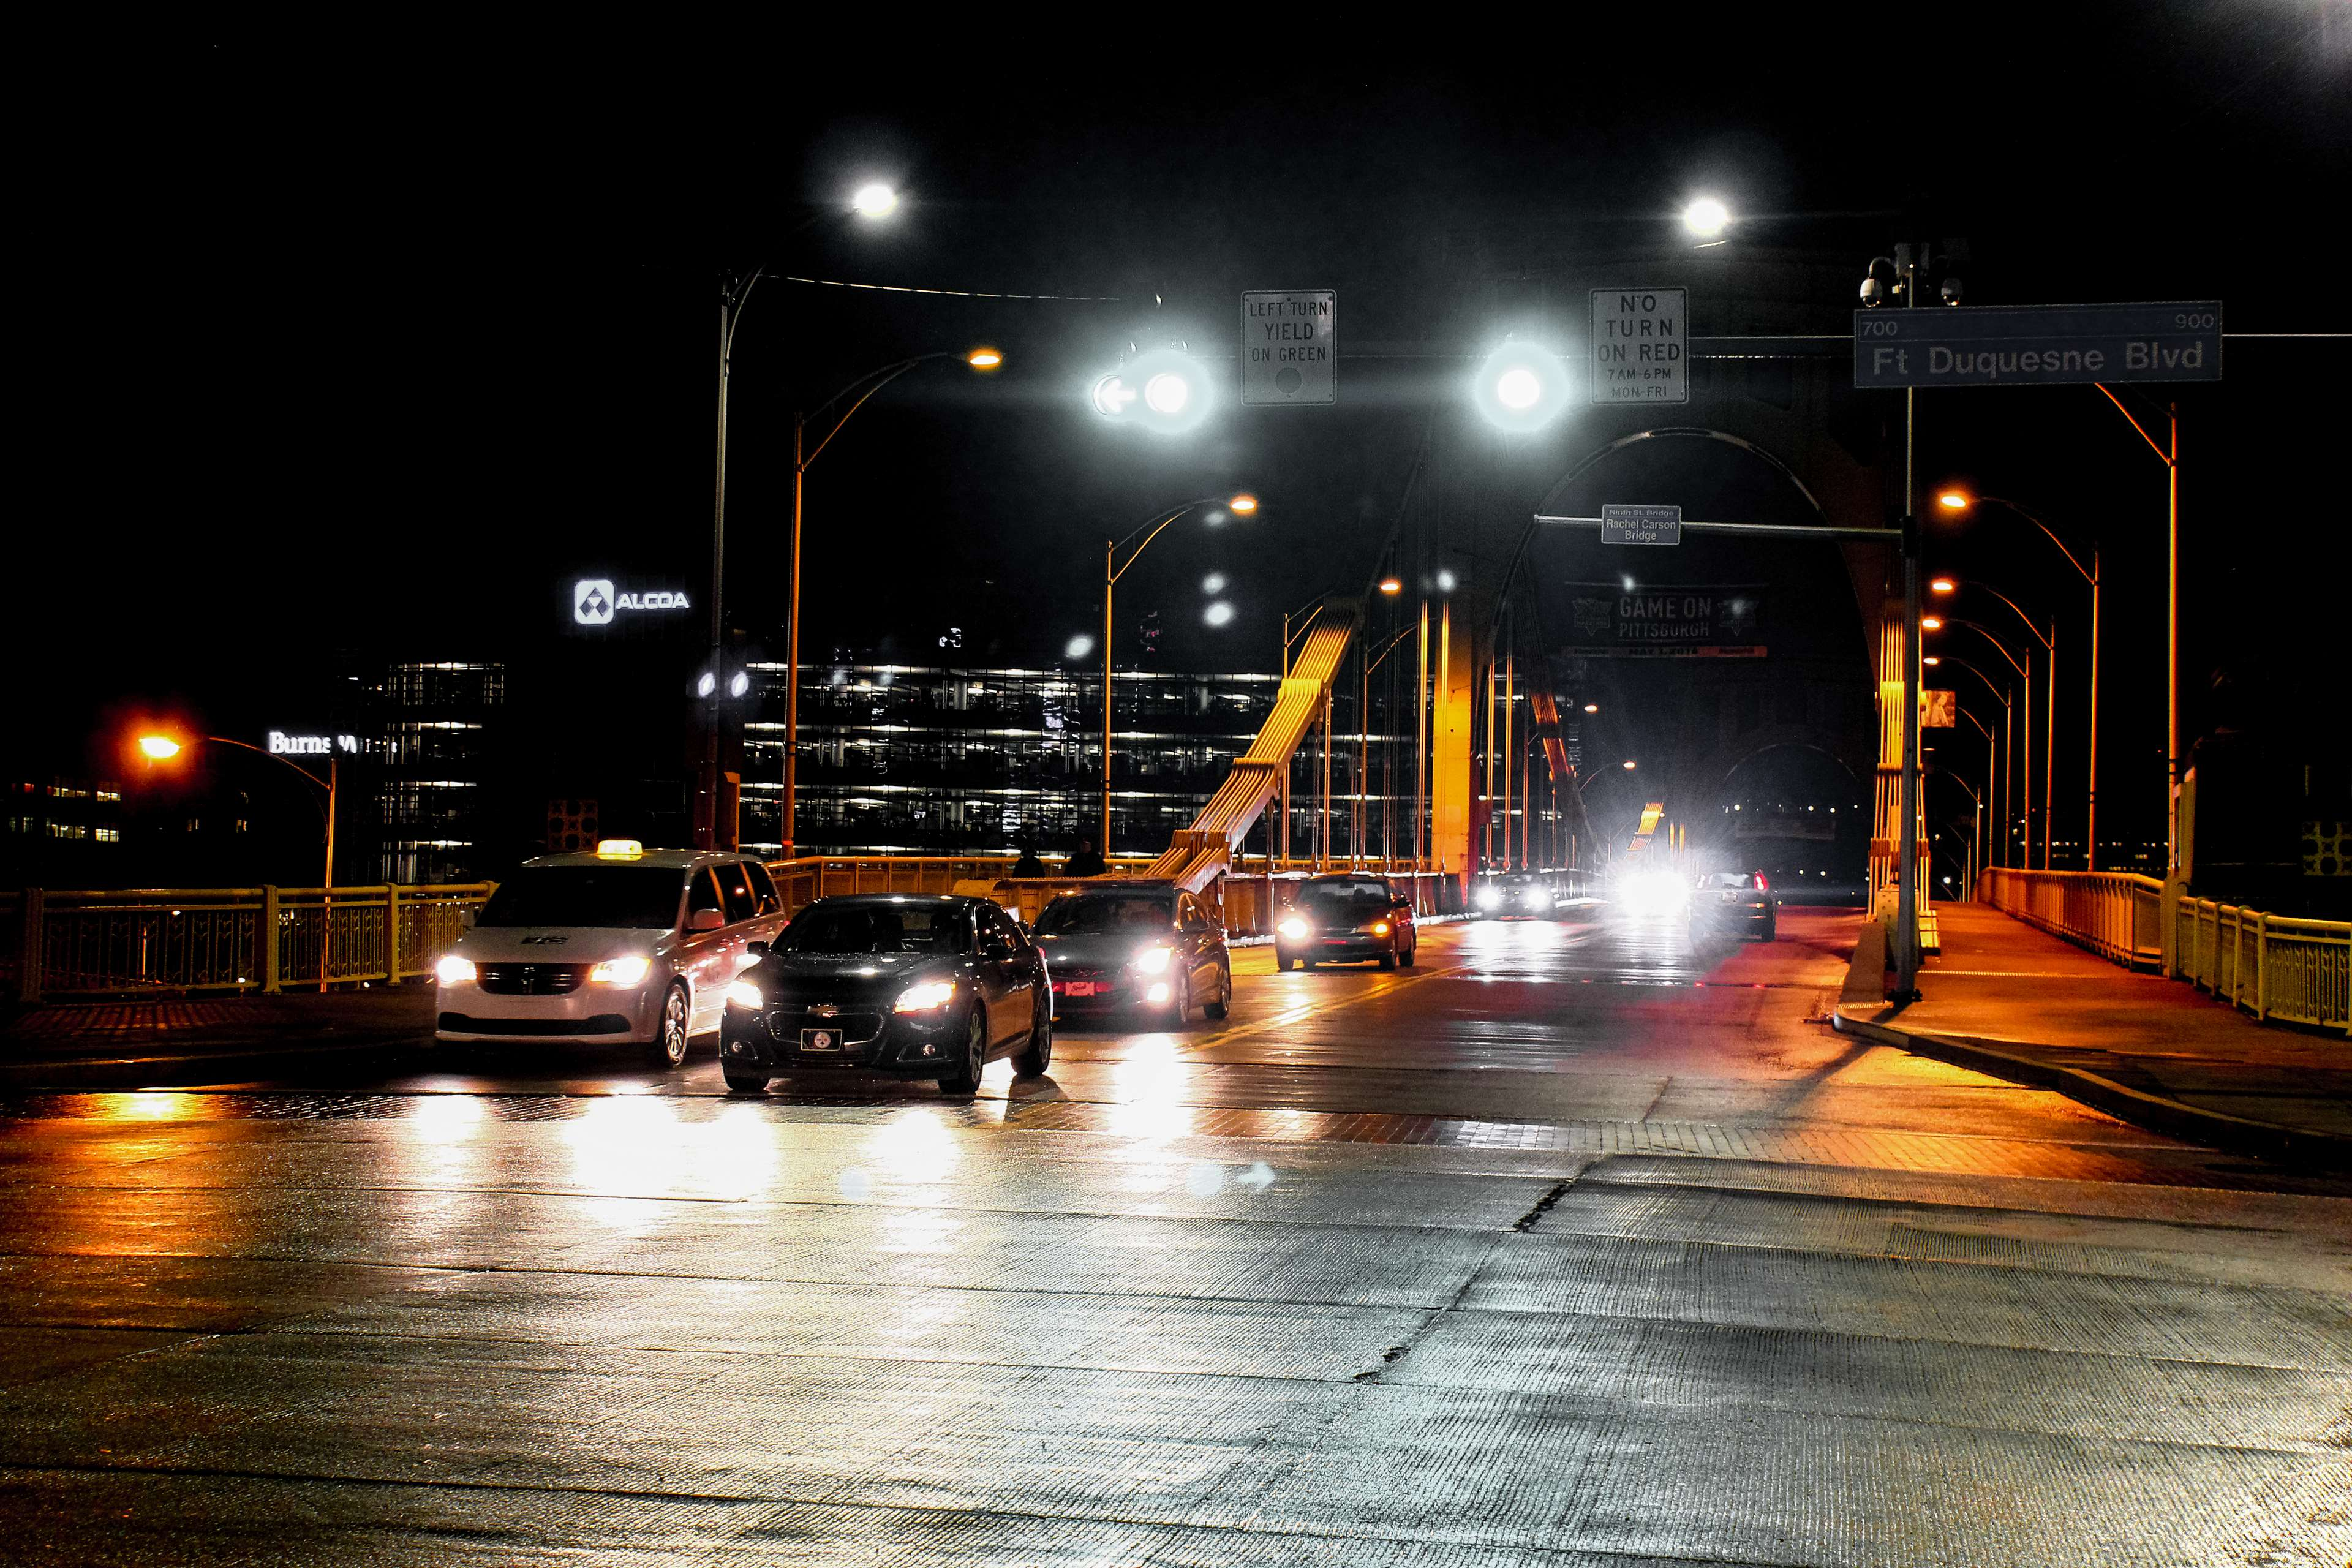 3049362-bridge_cars_city_dark_night_night-lights_road_street